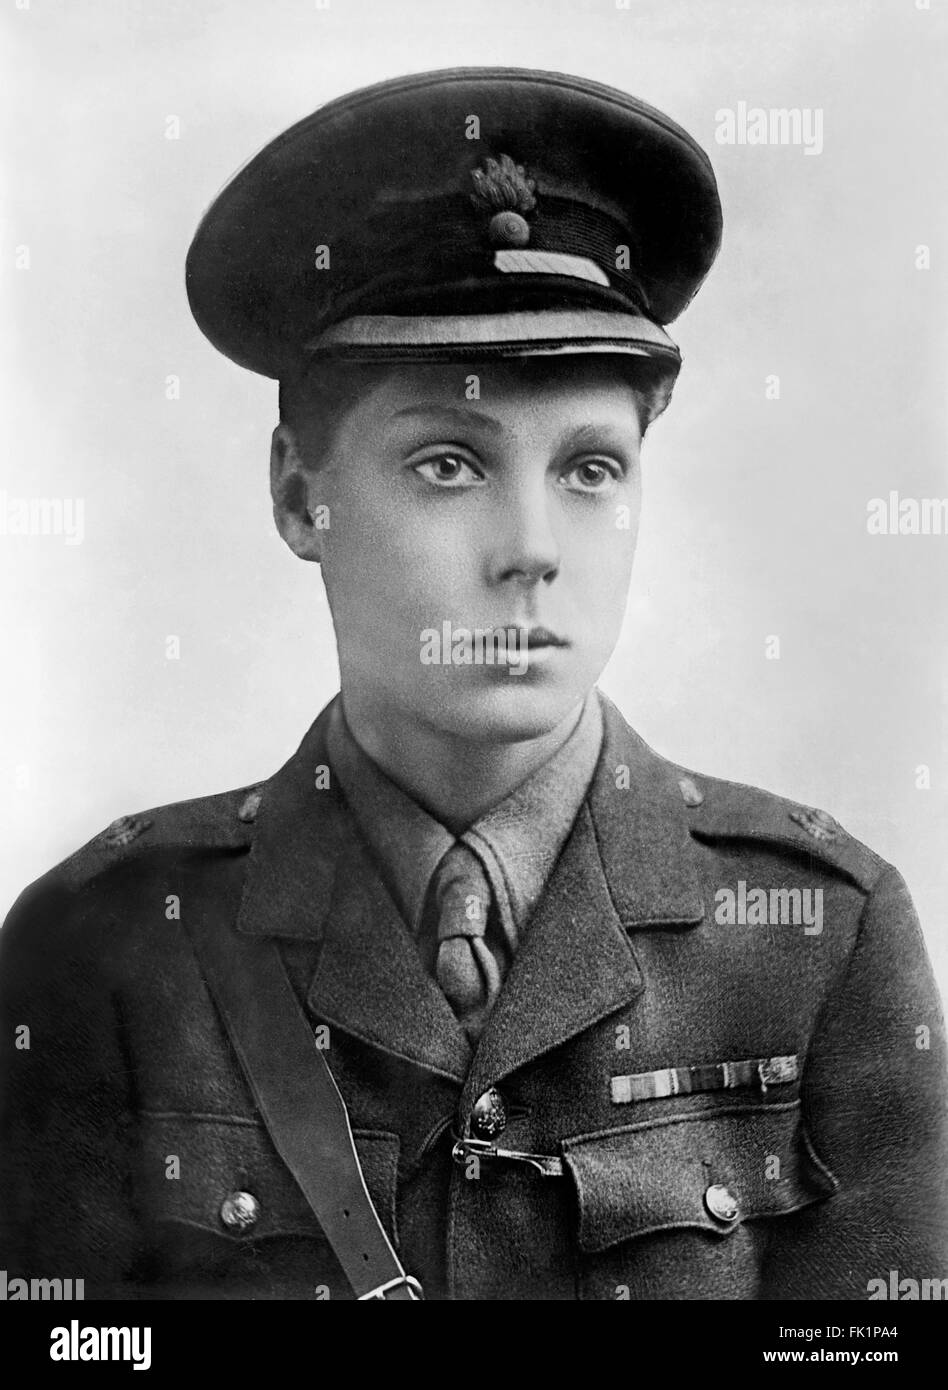 Edward VIII. Portrait of The Prince of Wales, future King Edward VIII and Duke of Windsor, as a 2nd Lieutenant in Stock Photo